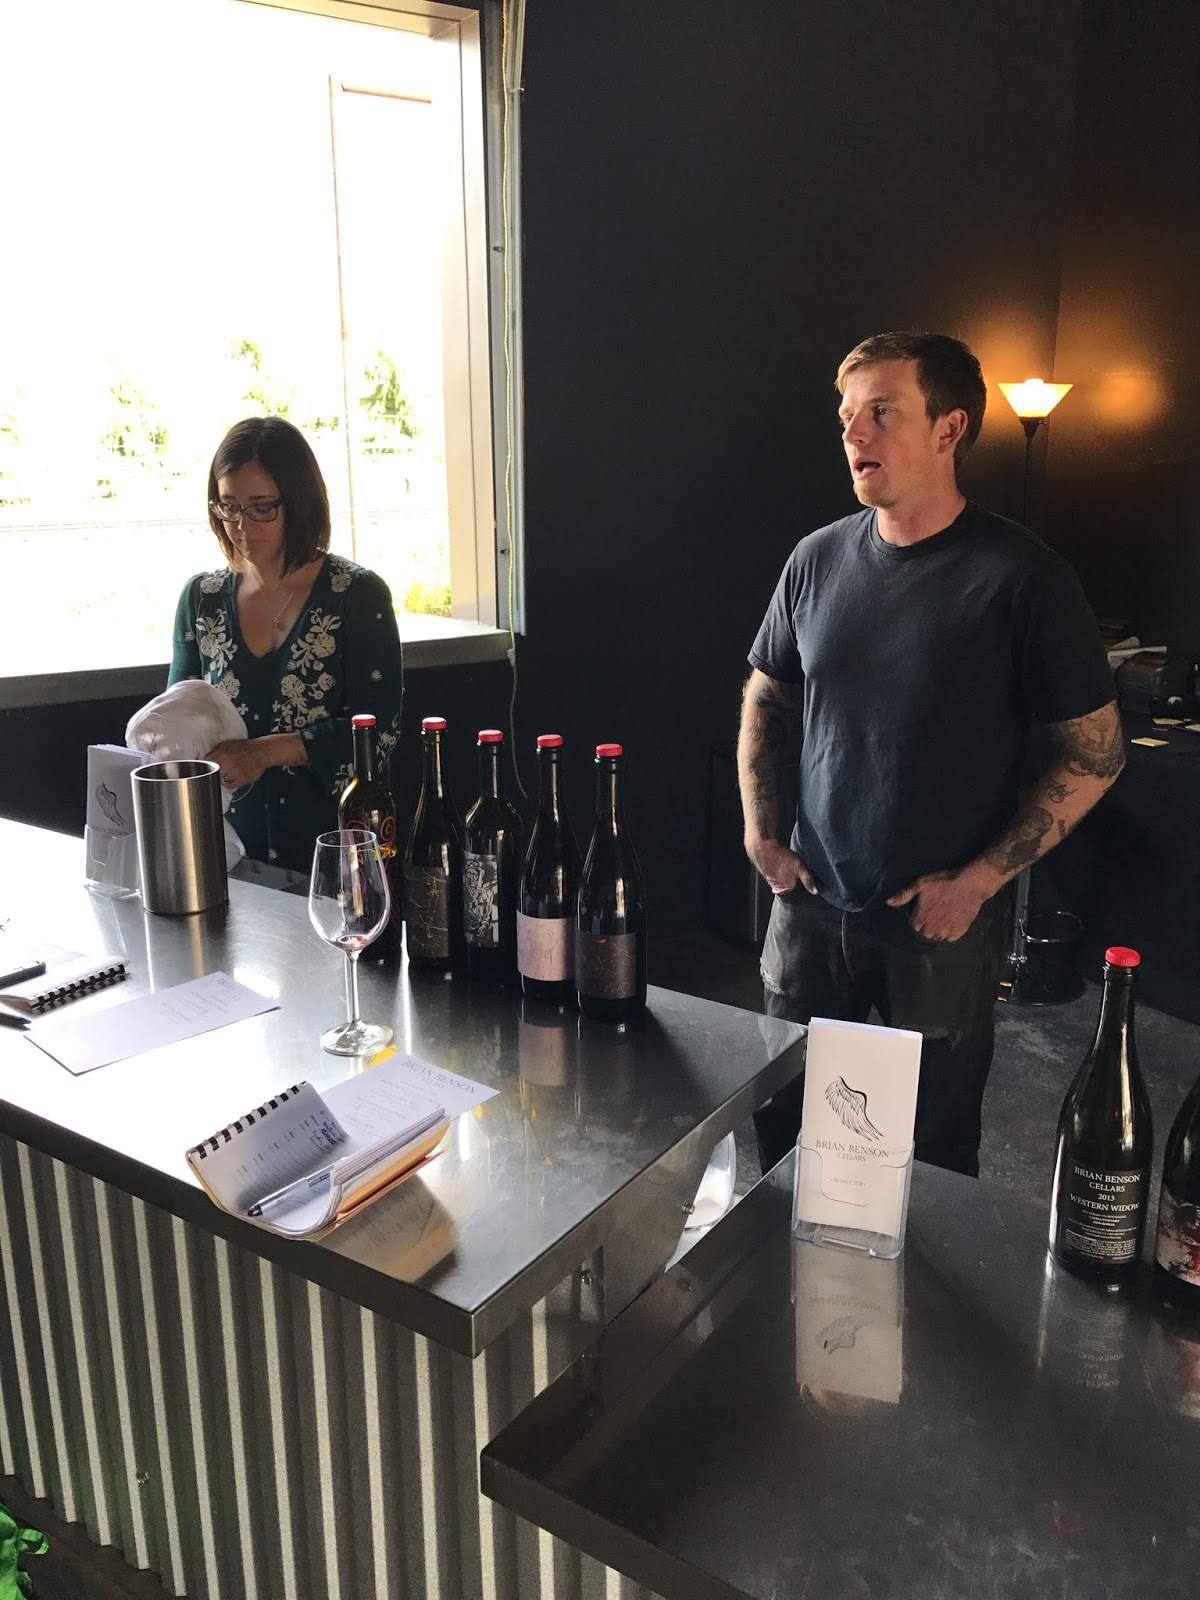 Reconnecting at Brian Benson Cellars with Christina u0026 Brian Benson. & A 2017 Central Coast Wine Pictorial | The Wine Write